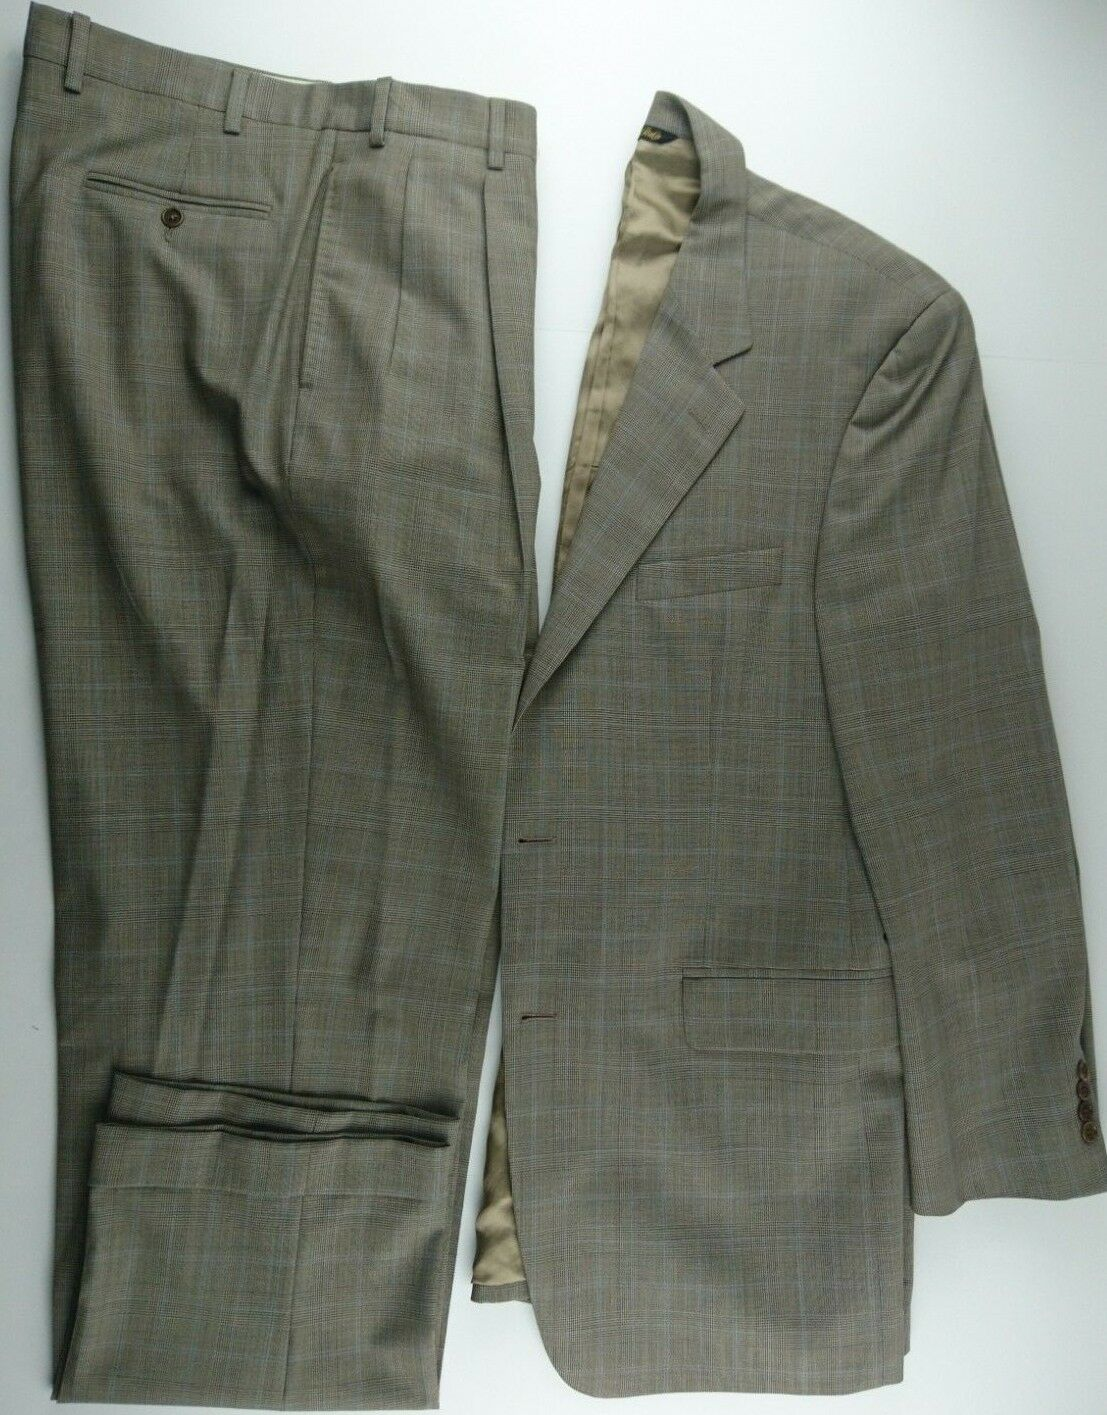 Nathan David 42 L 2-Piece Suit (36 X 32.60) Pleated Cuffed 2 Button Glen Plaid